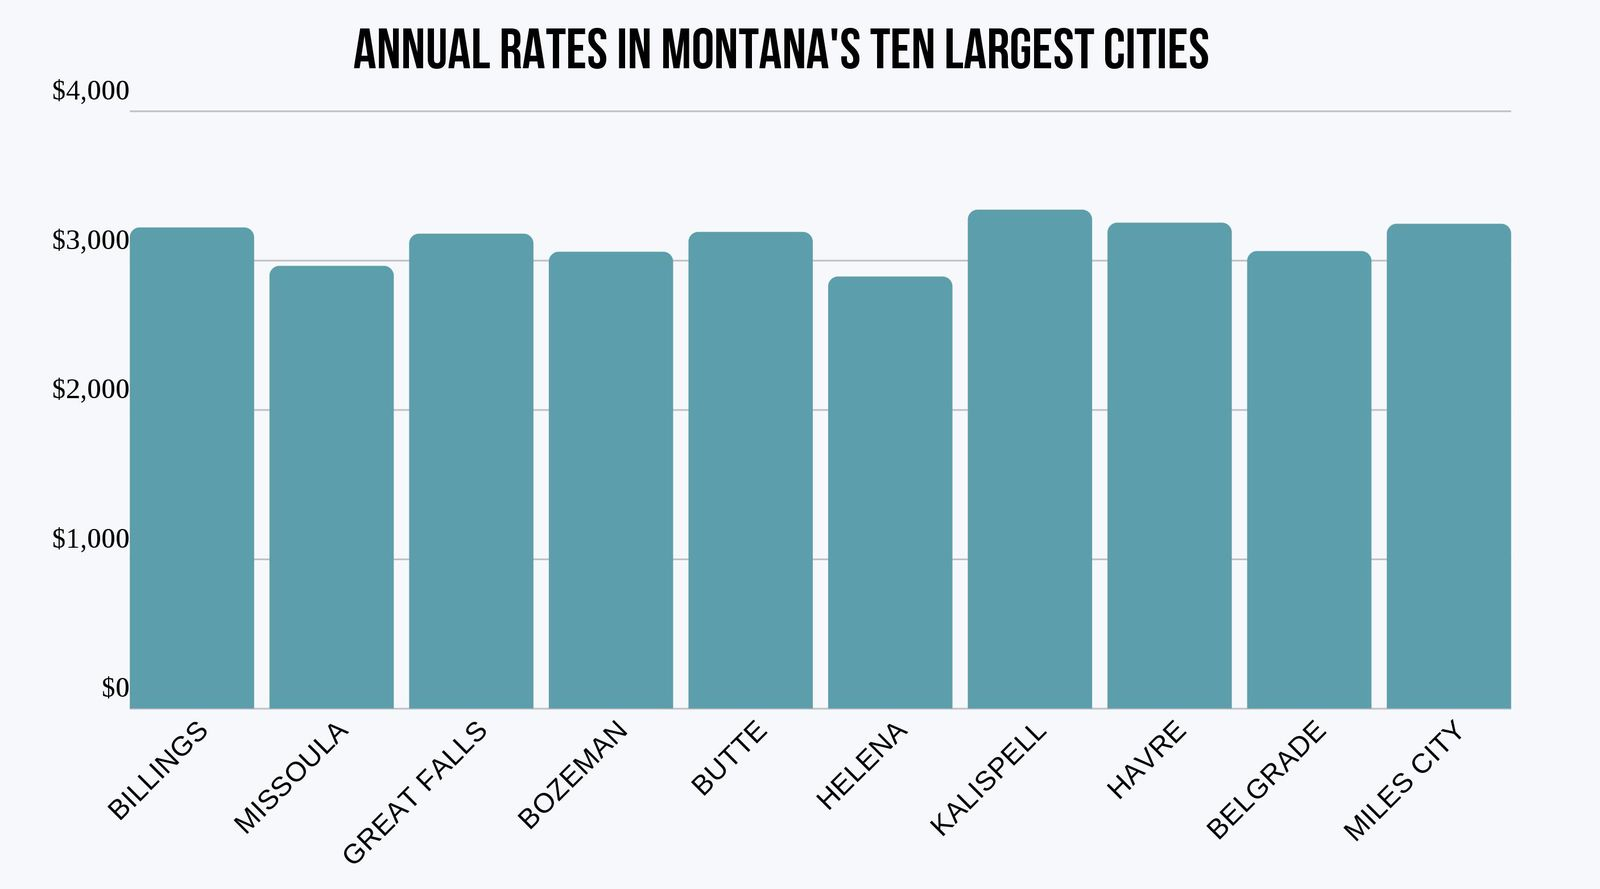 Average Car Insurance Rates In Montana's Largest Cities